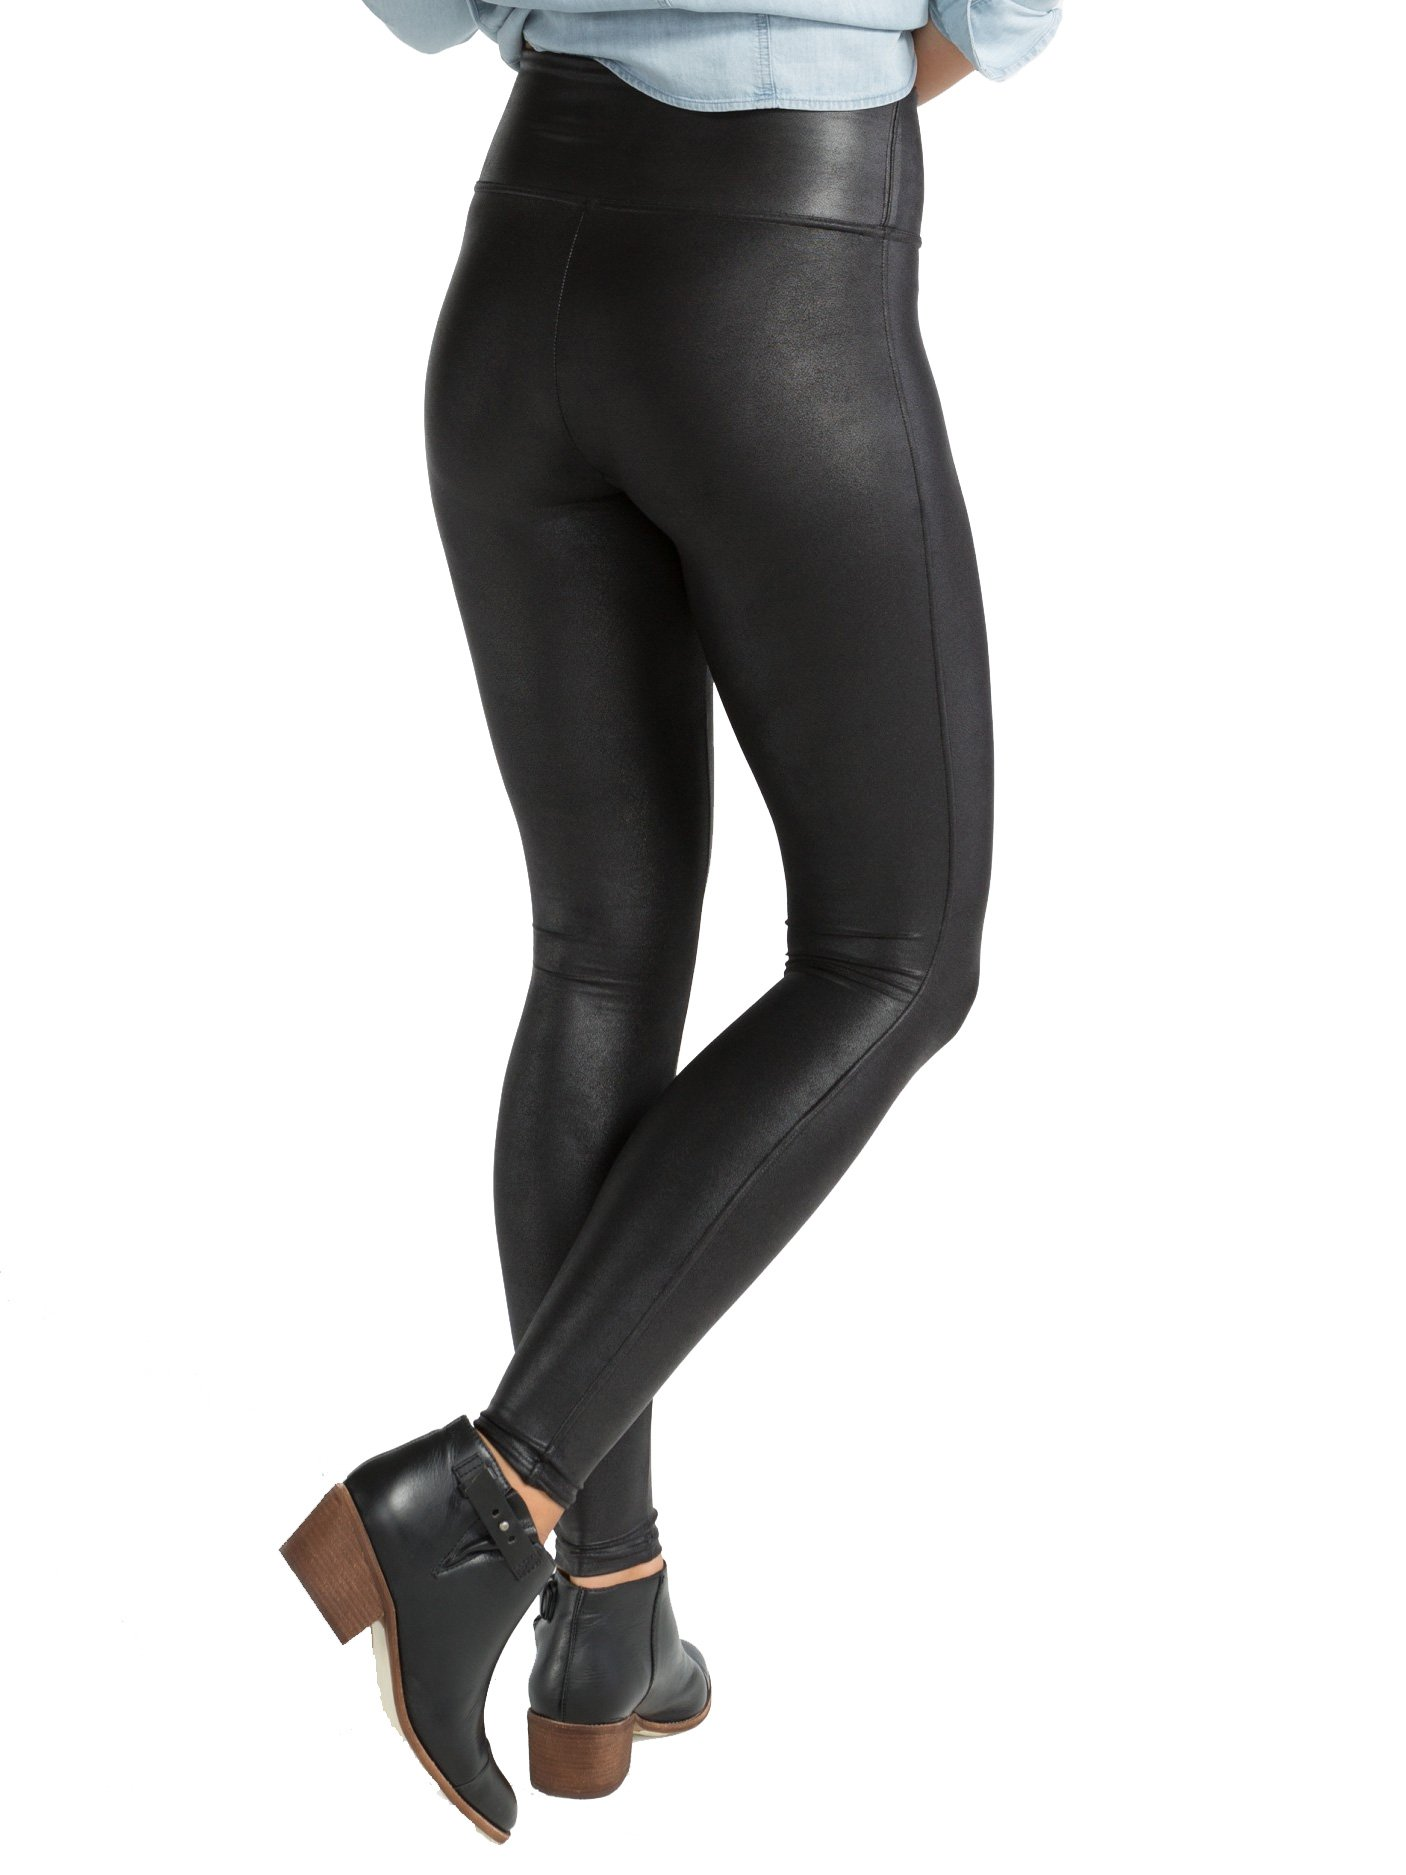 SPANX Plus Size Ready-To-Wow Faux Leather Leggings, 2X, Black by SPANX (Image #2)